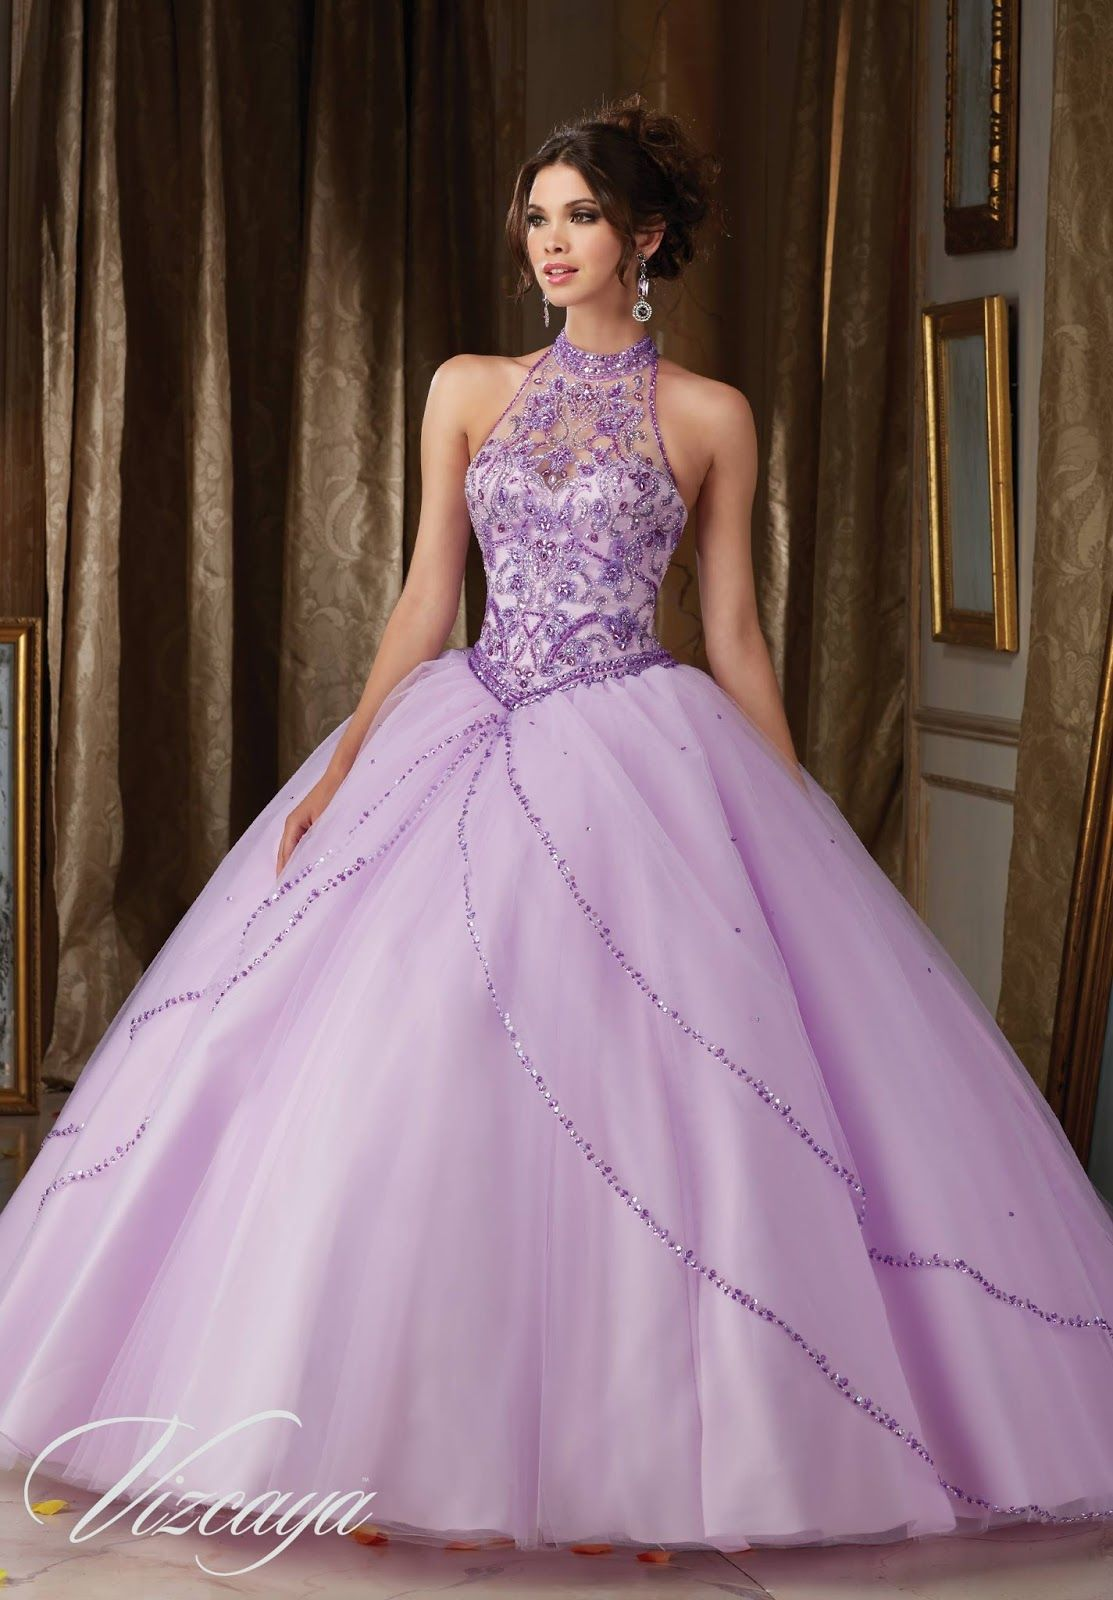 Stunning And Gorgeous Mori Lee Vizcaya Quinceanera Dress Style 89114 Is Sure To Light Up The Room During Any S Sweet 15 Party Made Out Of Tulle